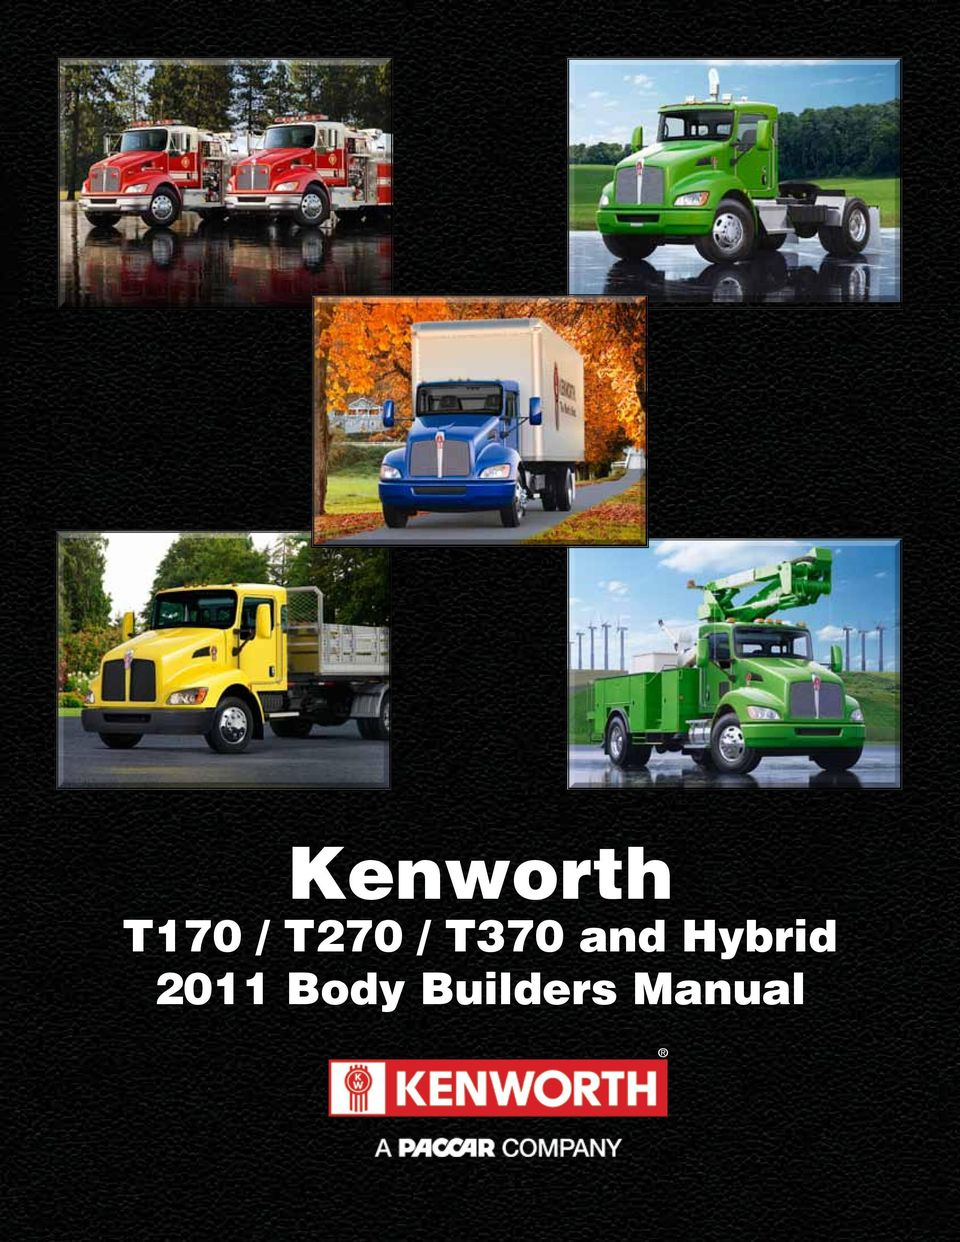 2011 Kenworth Fuse Box T270 Location Wiring Diagram Libraries T370 Specifications For Libraryt170 And Hybrid Body Builders Manual